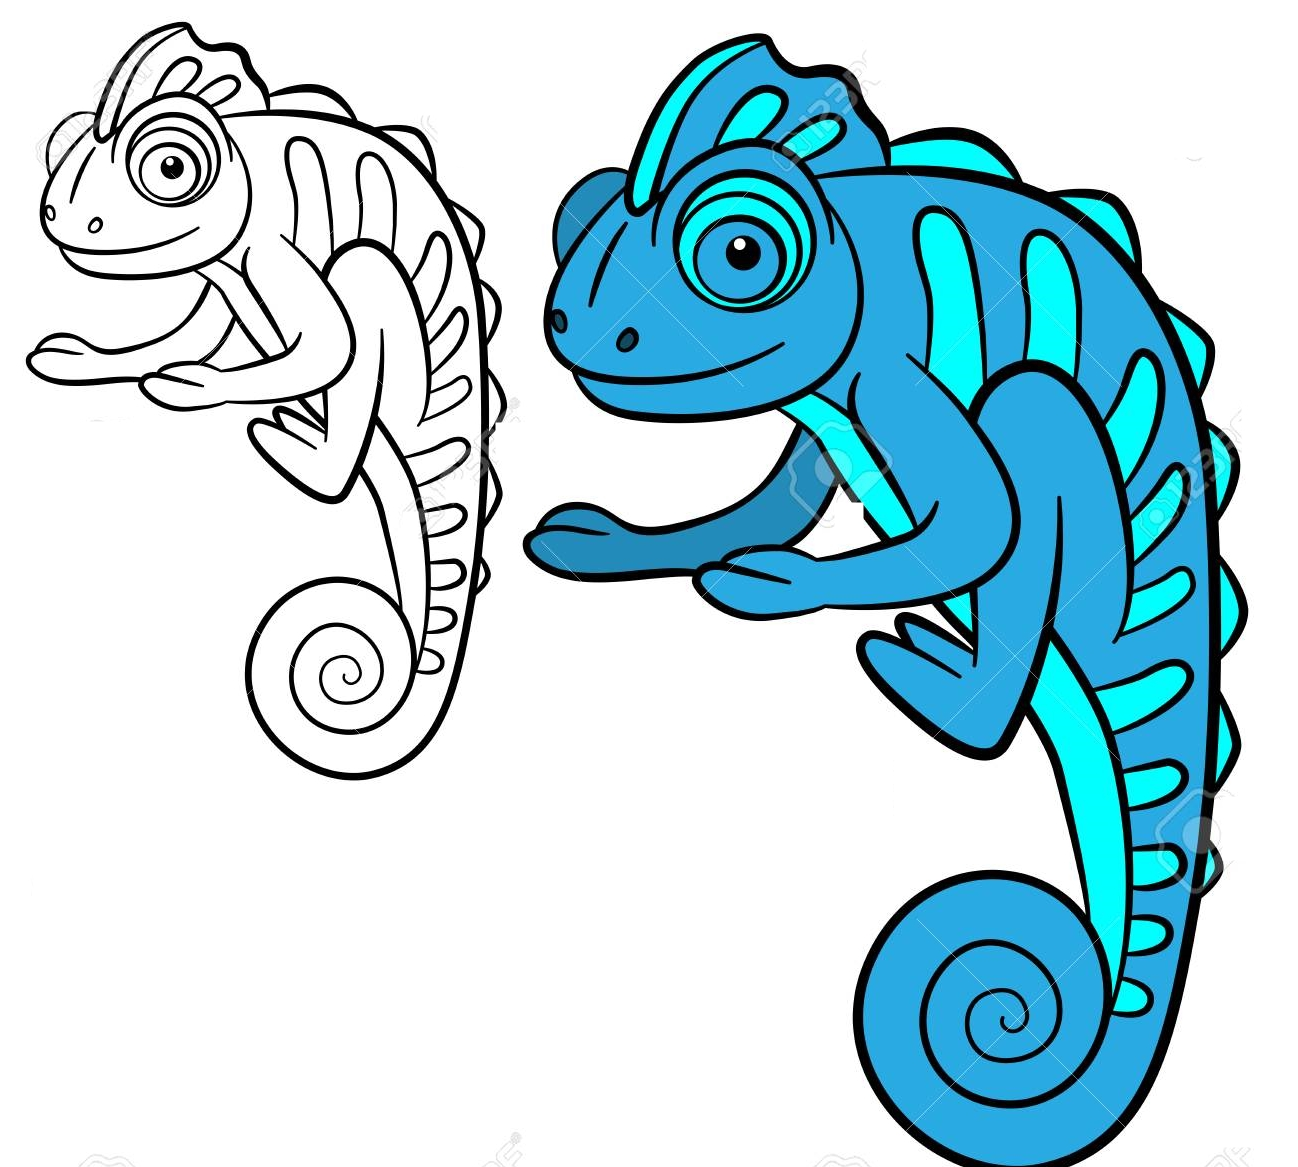 Coloring Page Wild Animals-Color me: iguana - Coloring Page